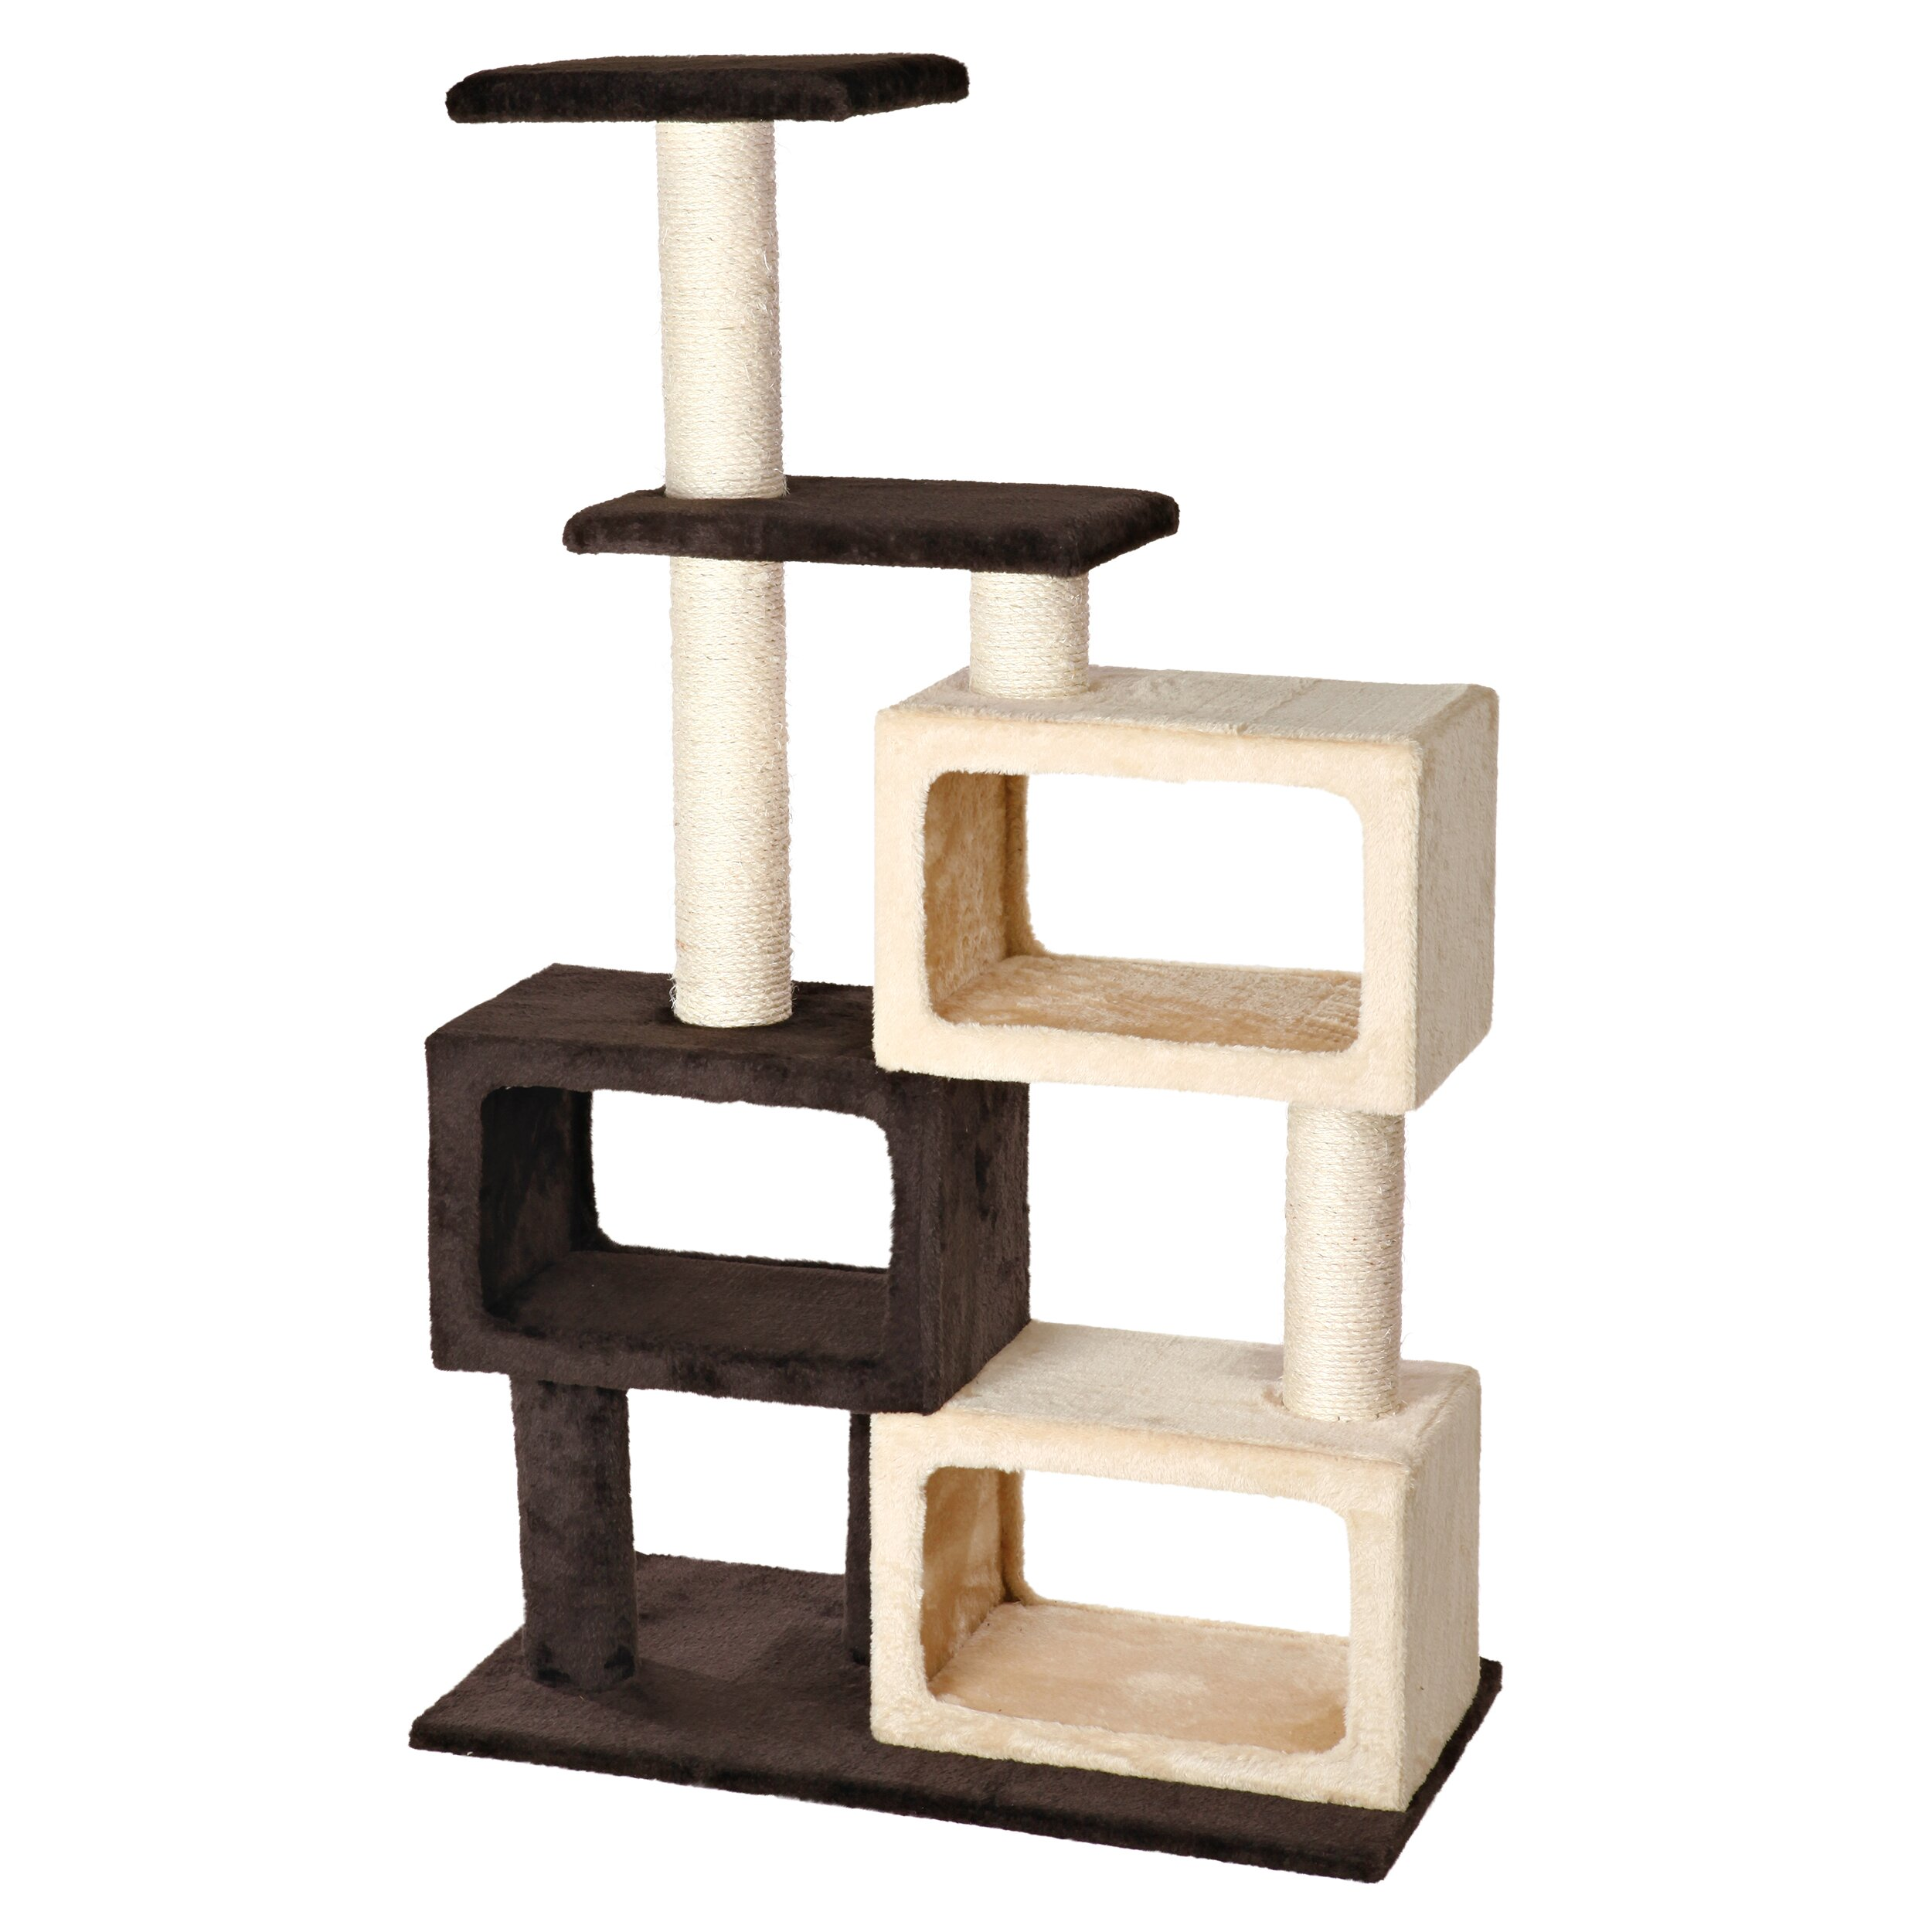 Trixie 51 bartolo cat tree reviews wayfair for Pictures of cat trees